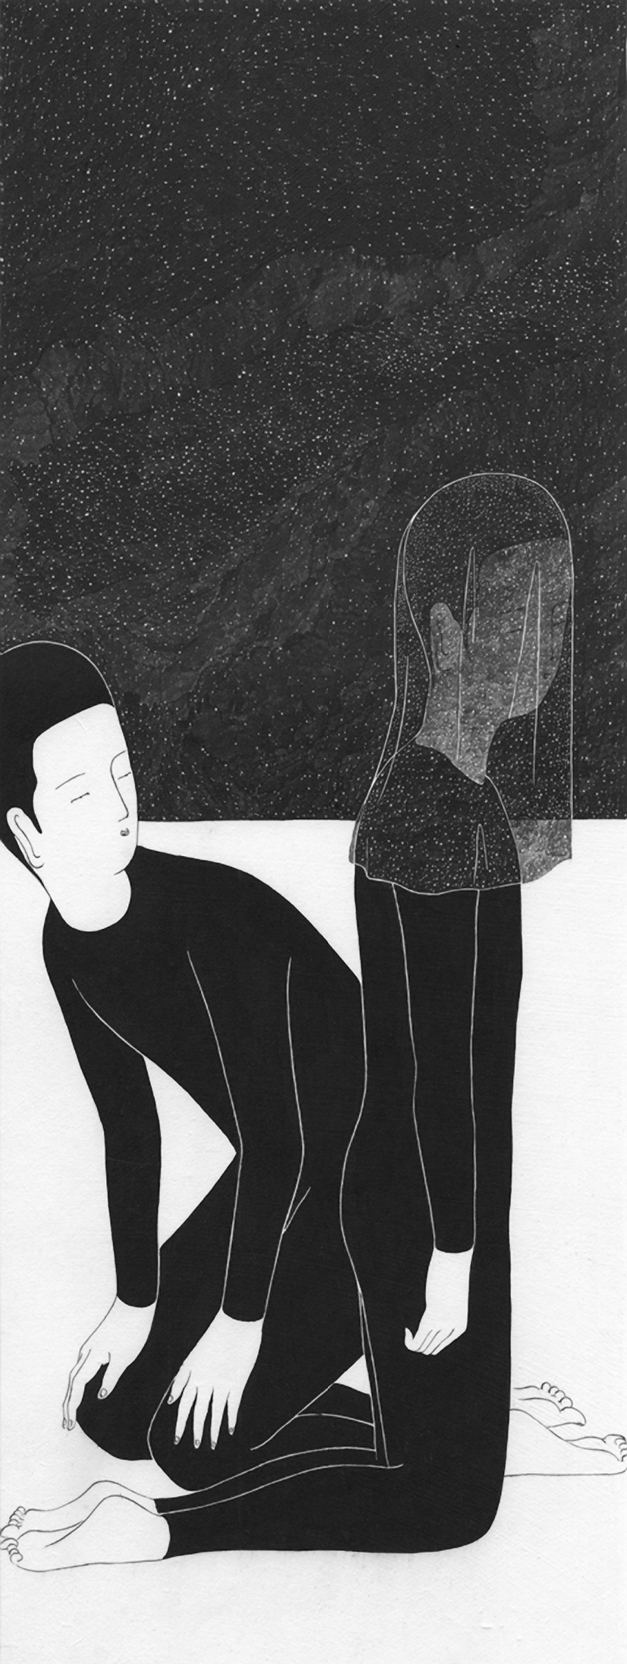 Moonassi, Daehyun Kim, illustration, drawing, black and white, dark, obscure